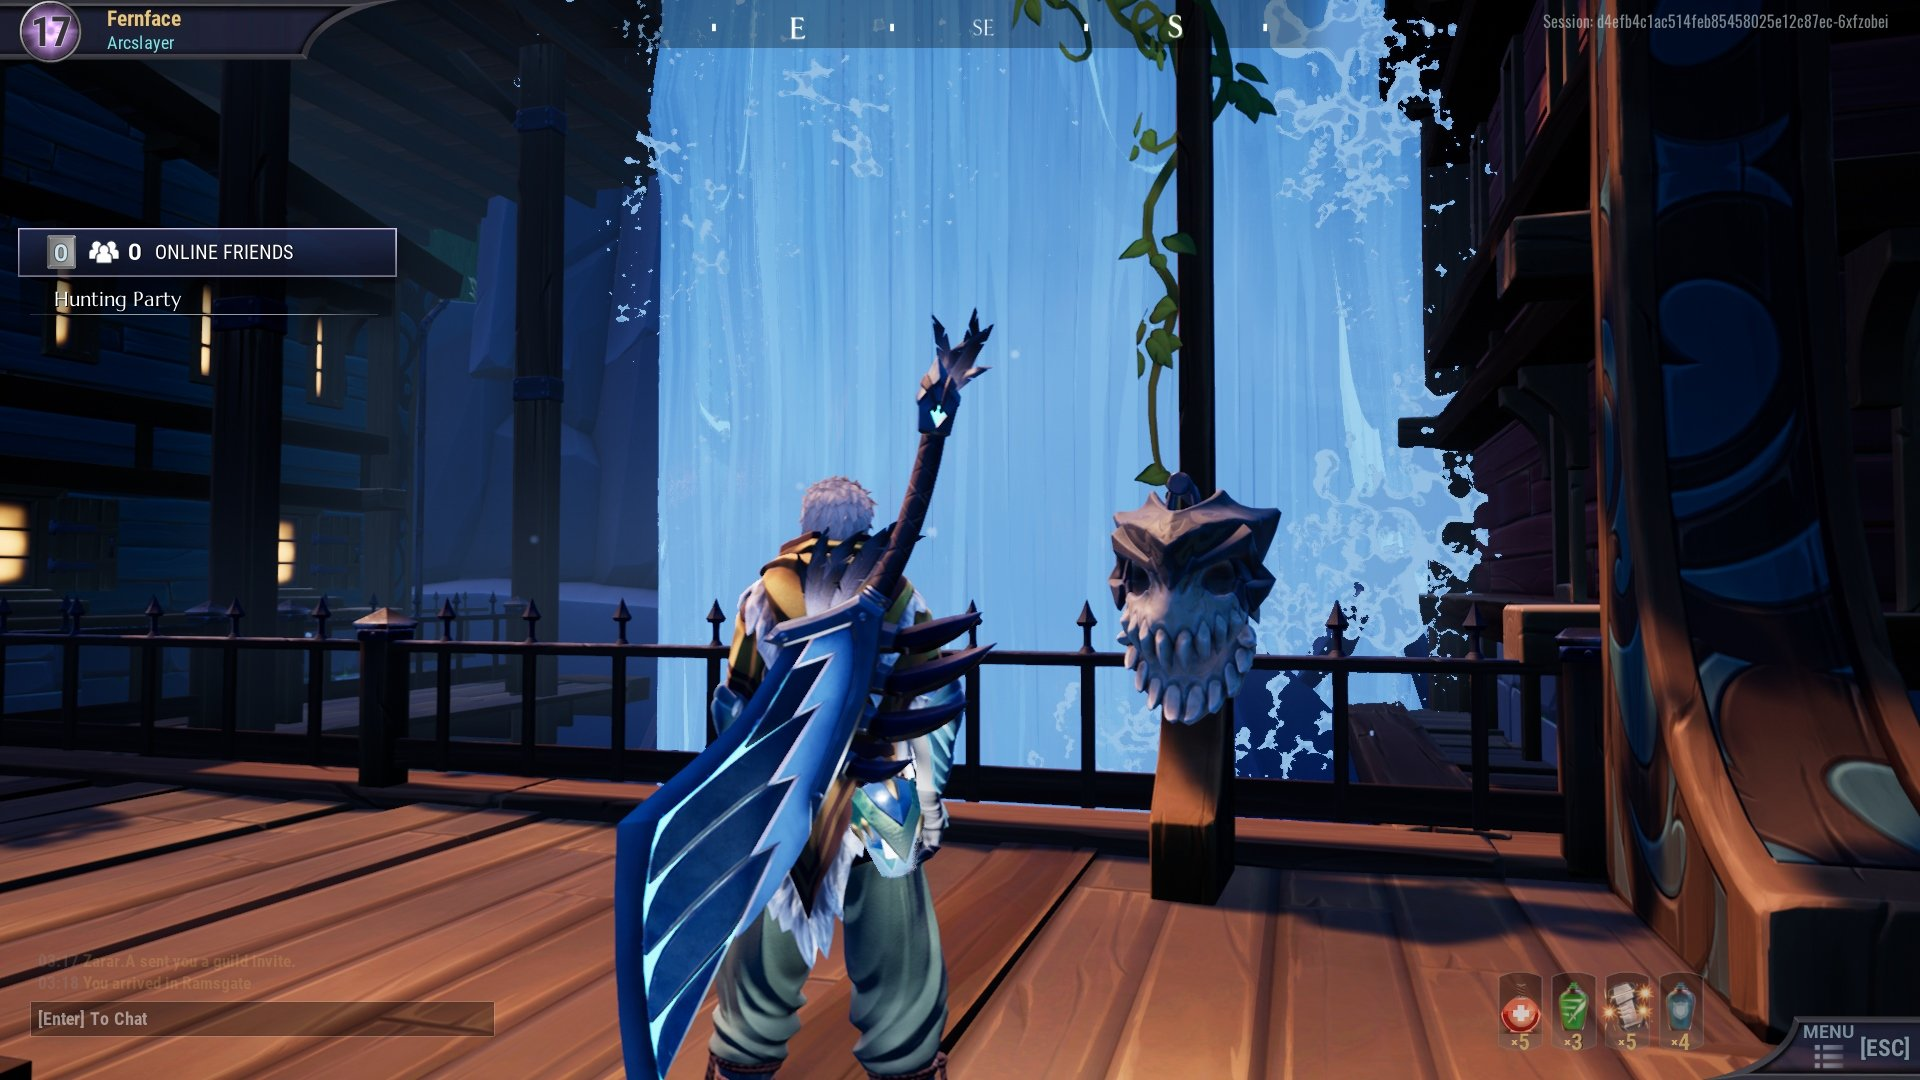 Dread Skull 16 - All daily dread skull locations in Dauntless